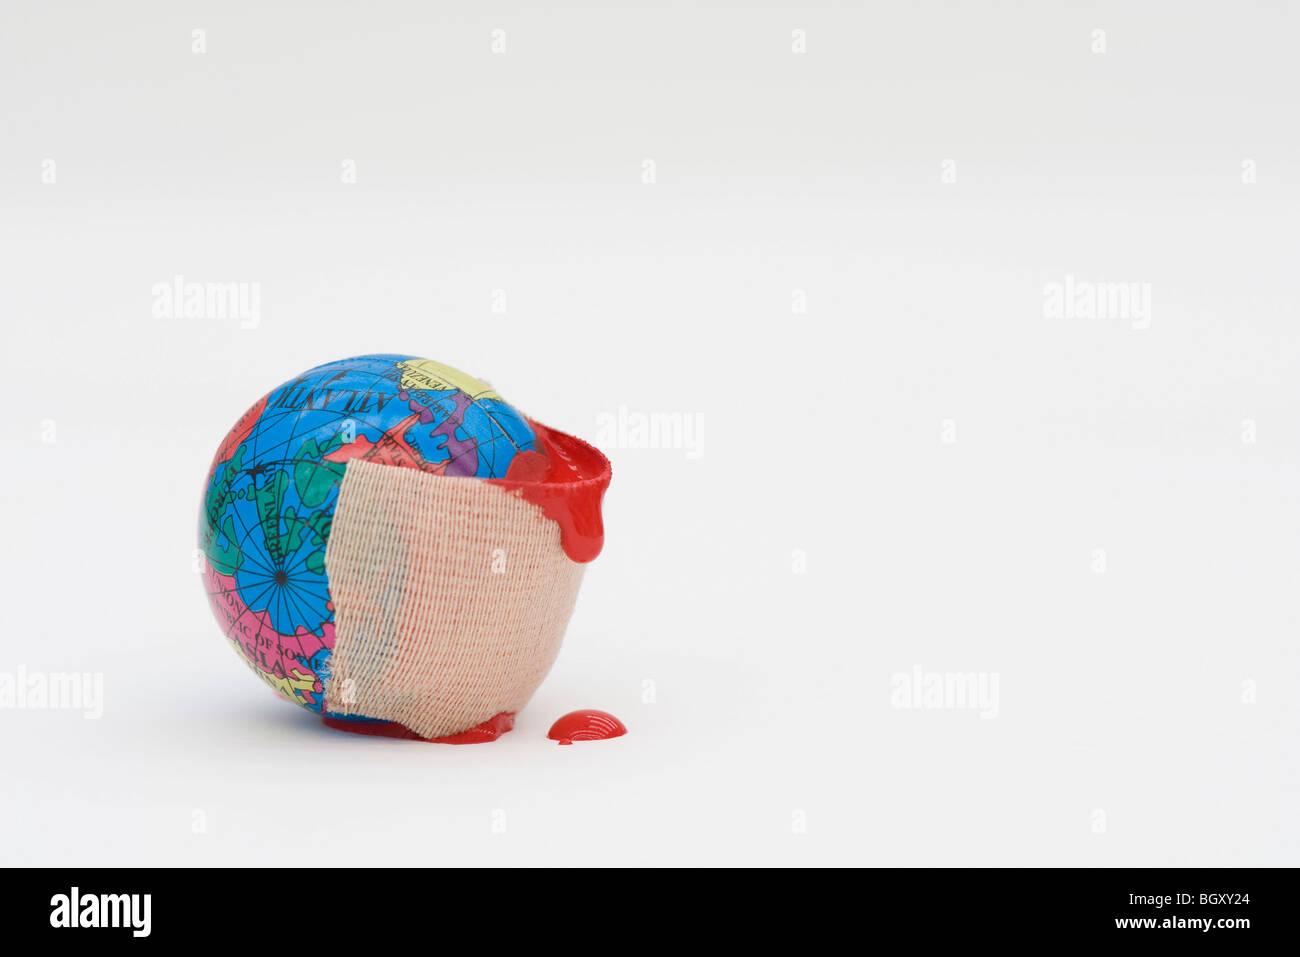 Adhesive bandage dripping blood wrapped around globe - Stock Image